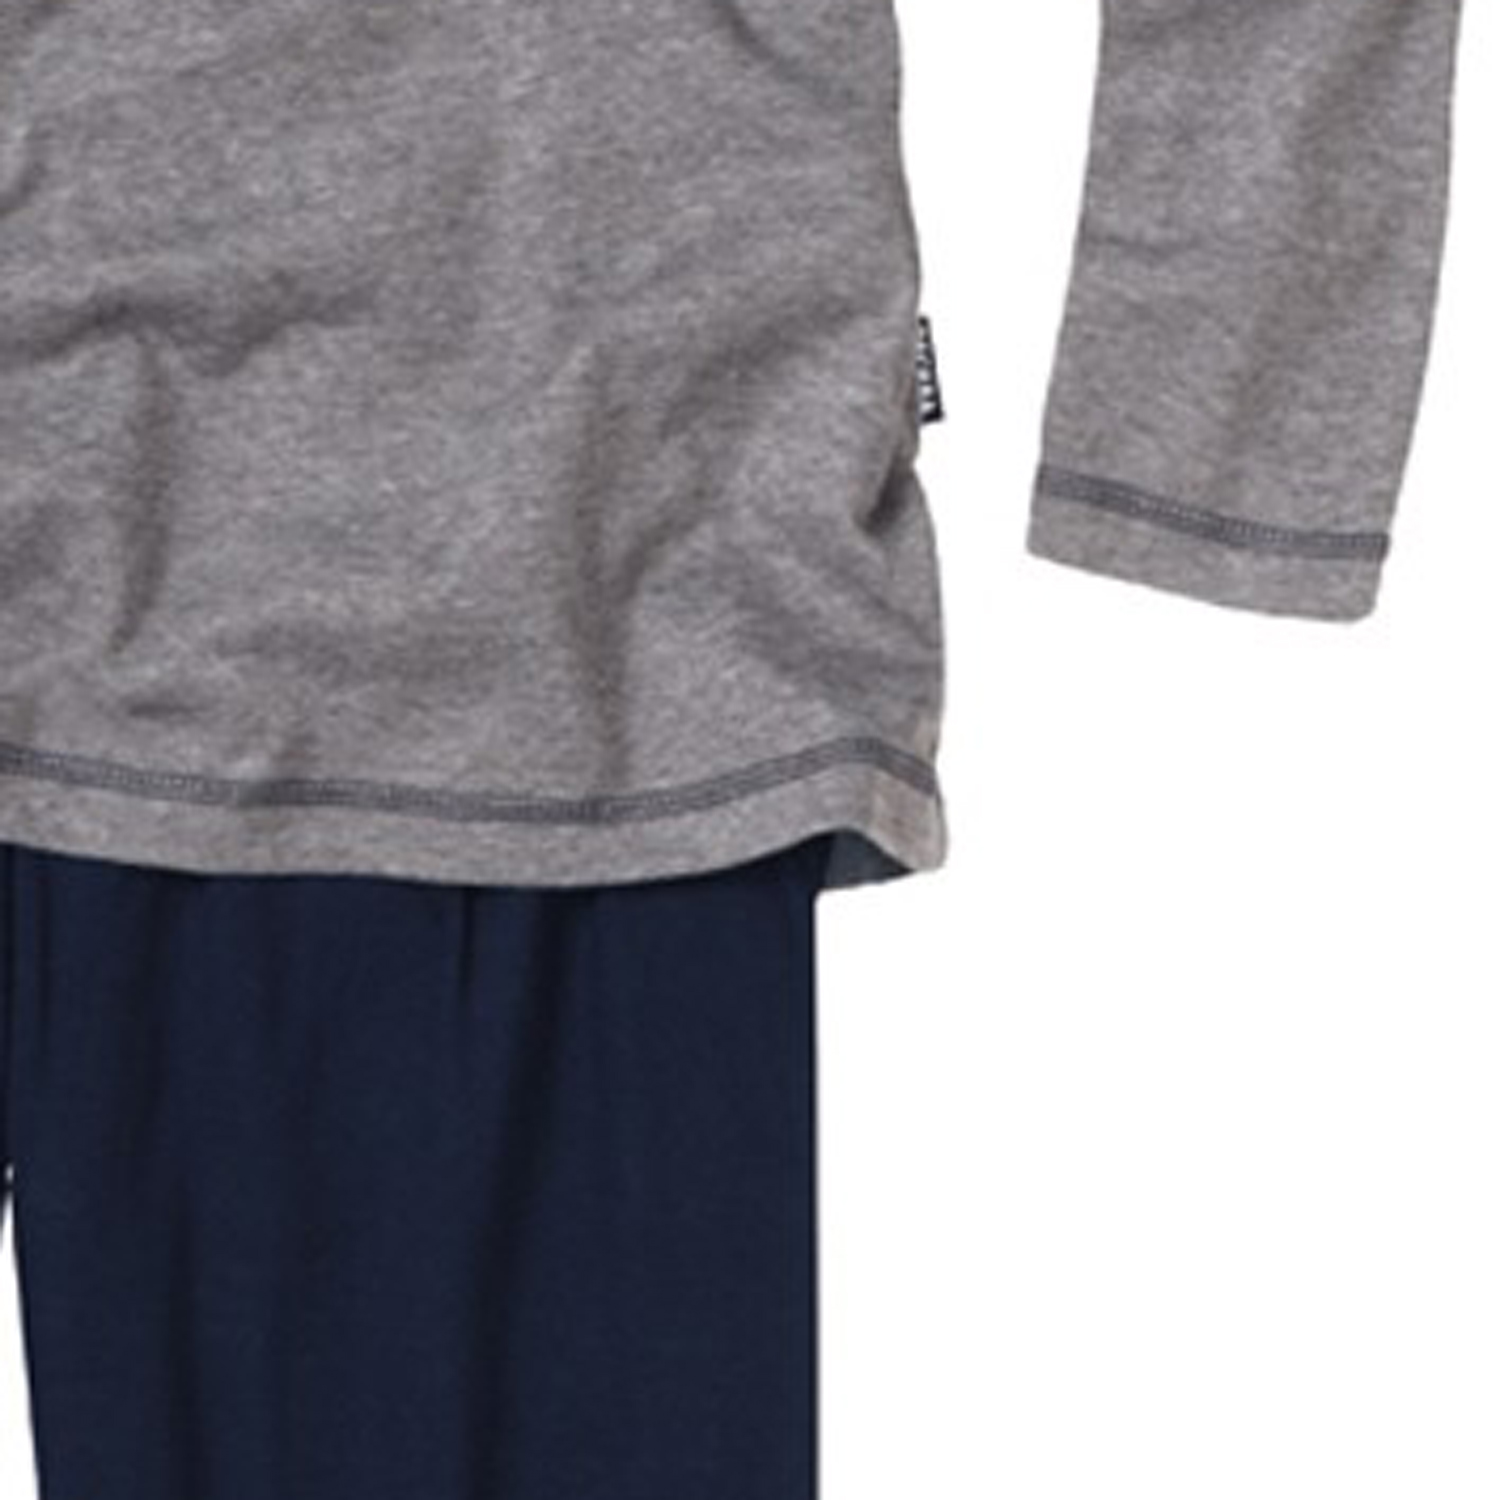 Detail Image to Long pyjamas grey-mottled by CECEBA in oversizes up to 7XL